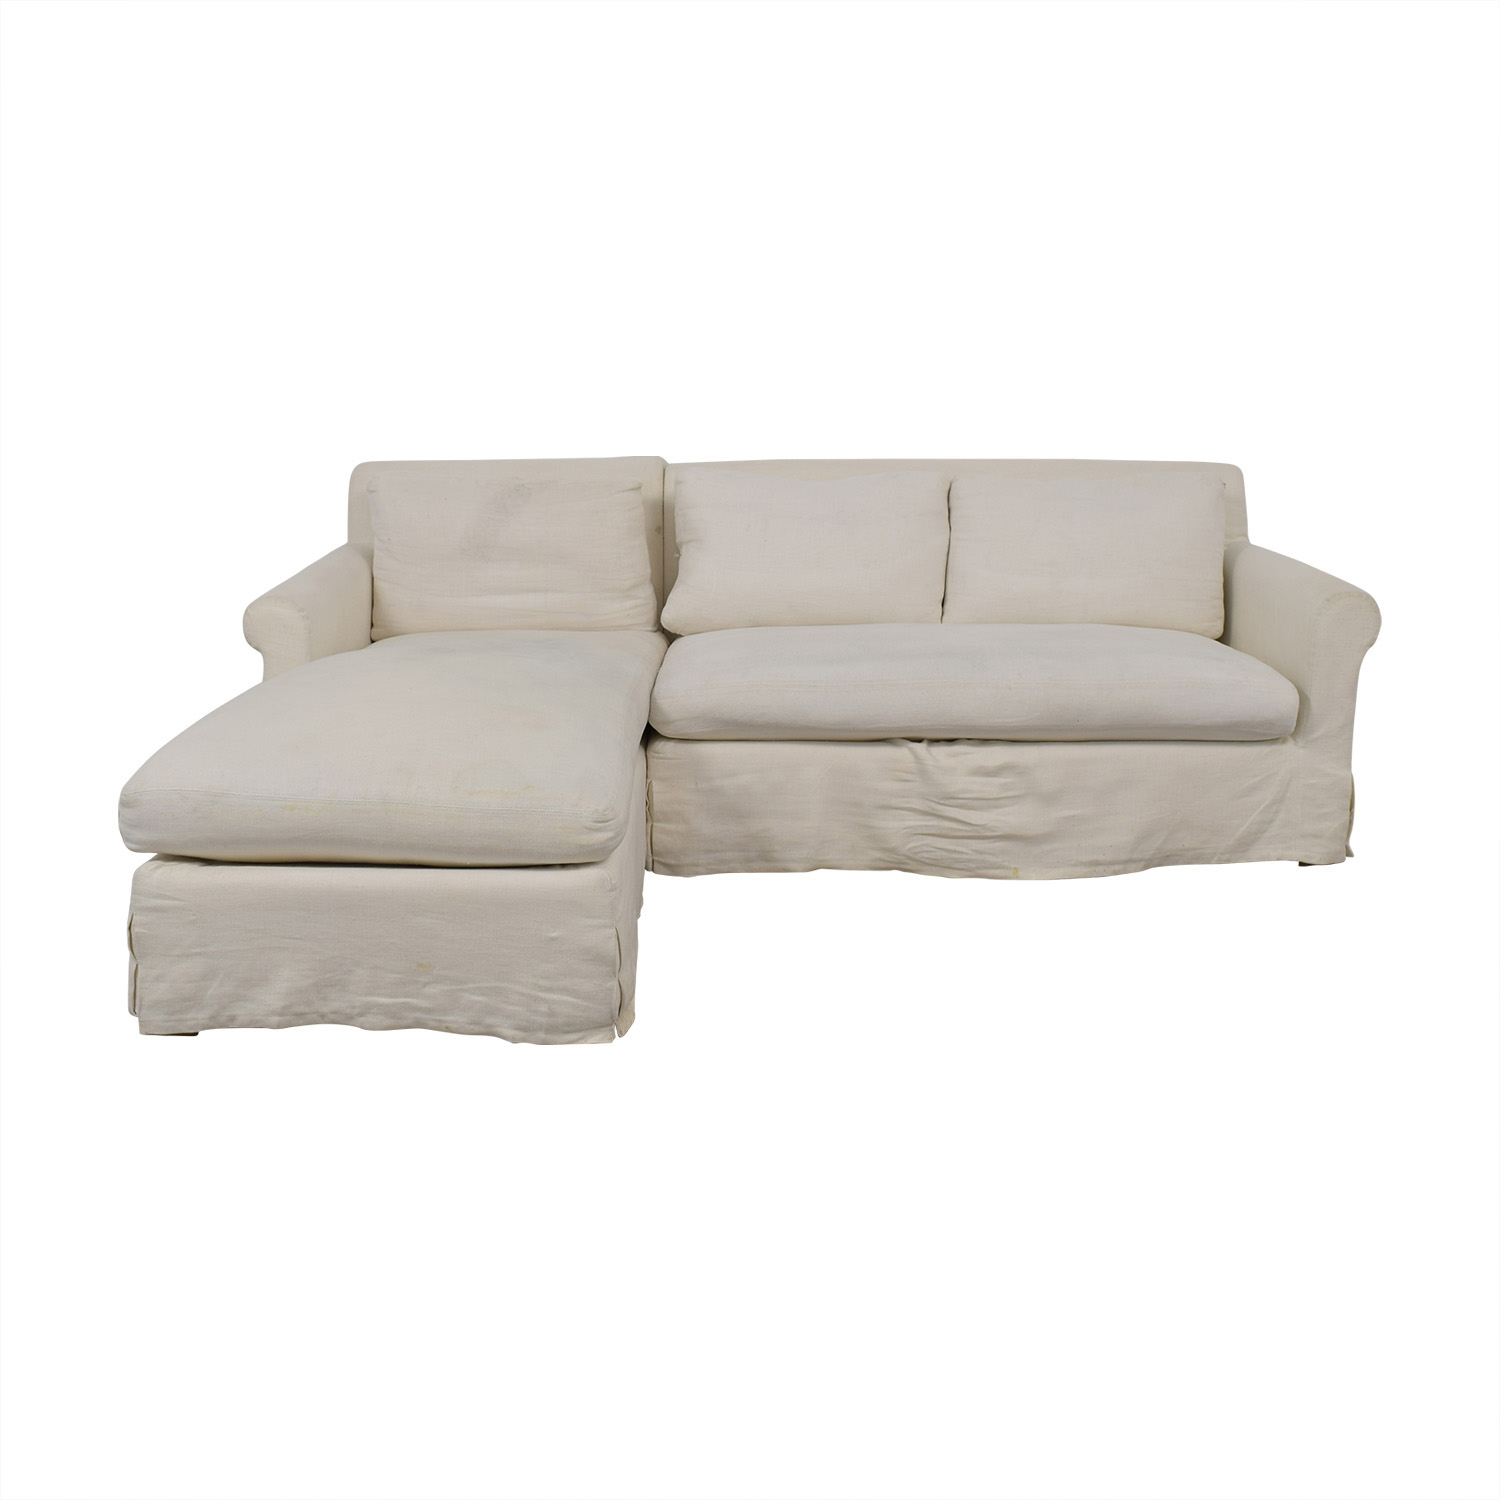 Restoration Hardware Restoration Hardware Petite Roll White Left Chaise Sectional for sale